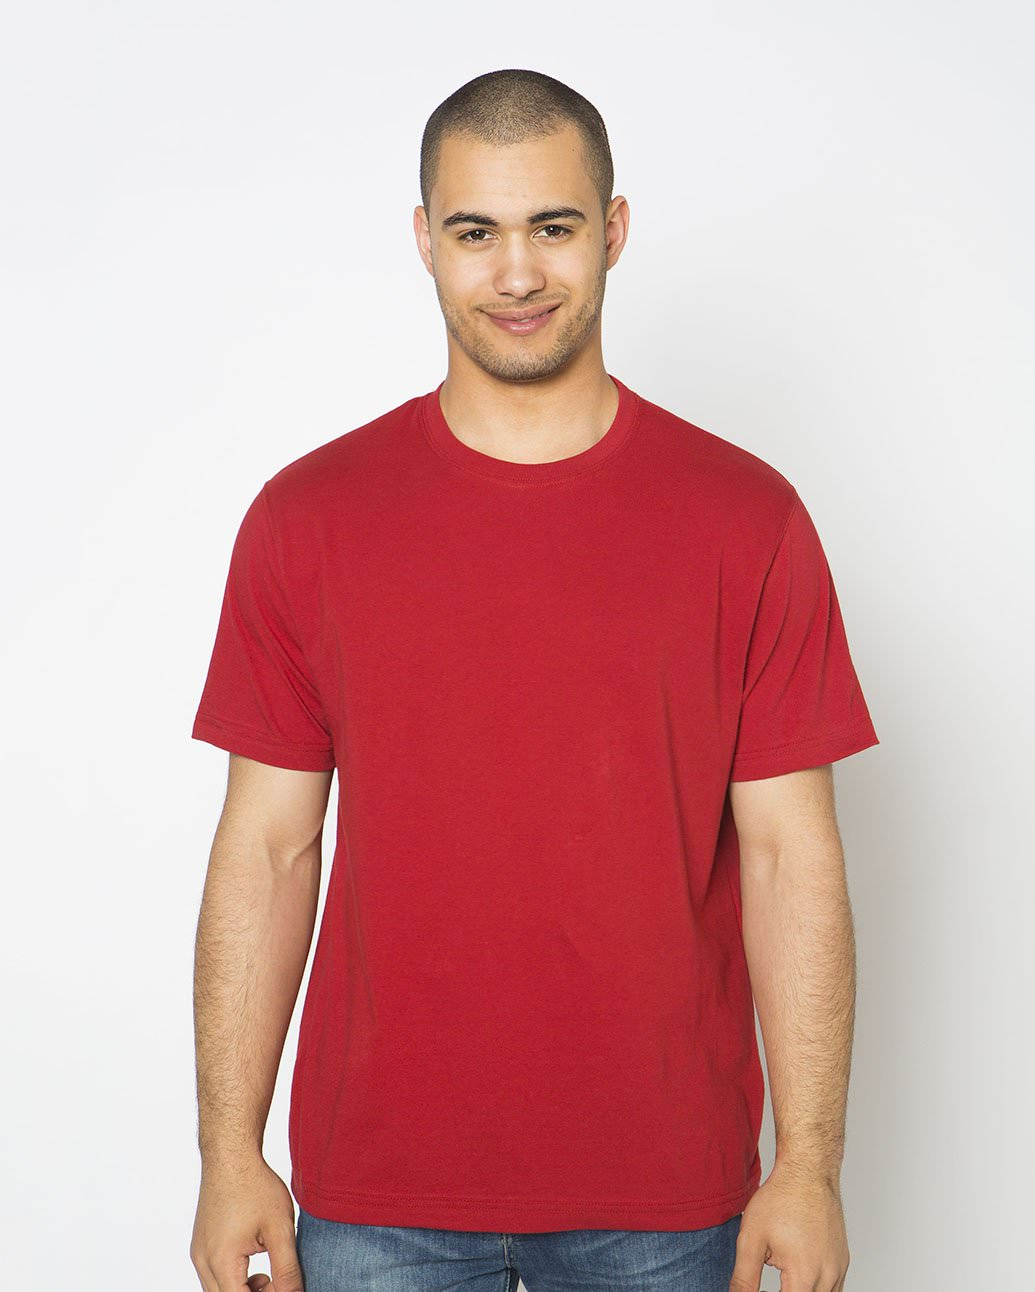 T-Shirt Men's  Short Sleeve 100% Cotton Ruby Red